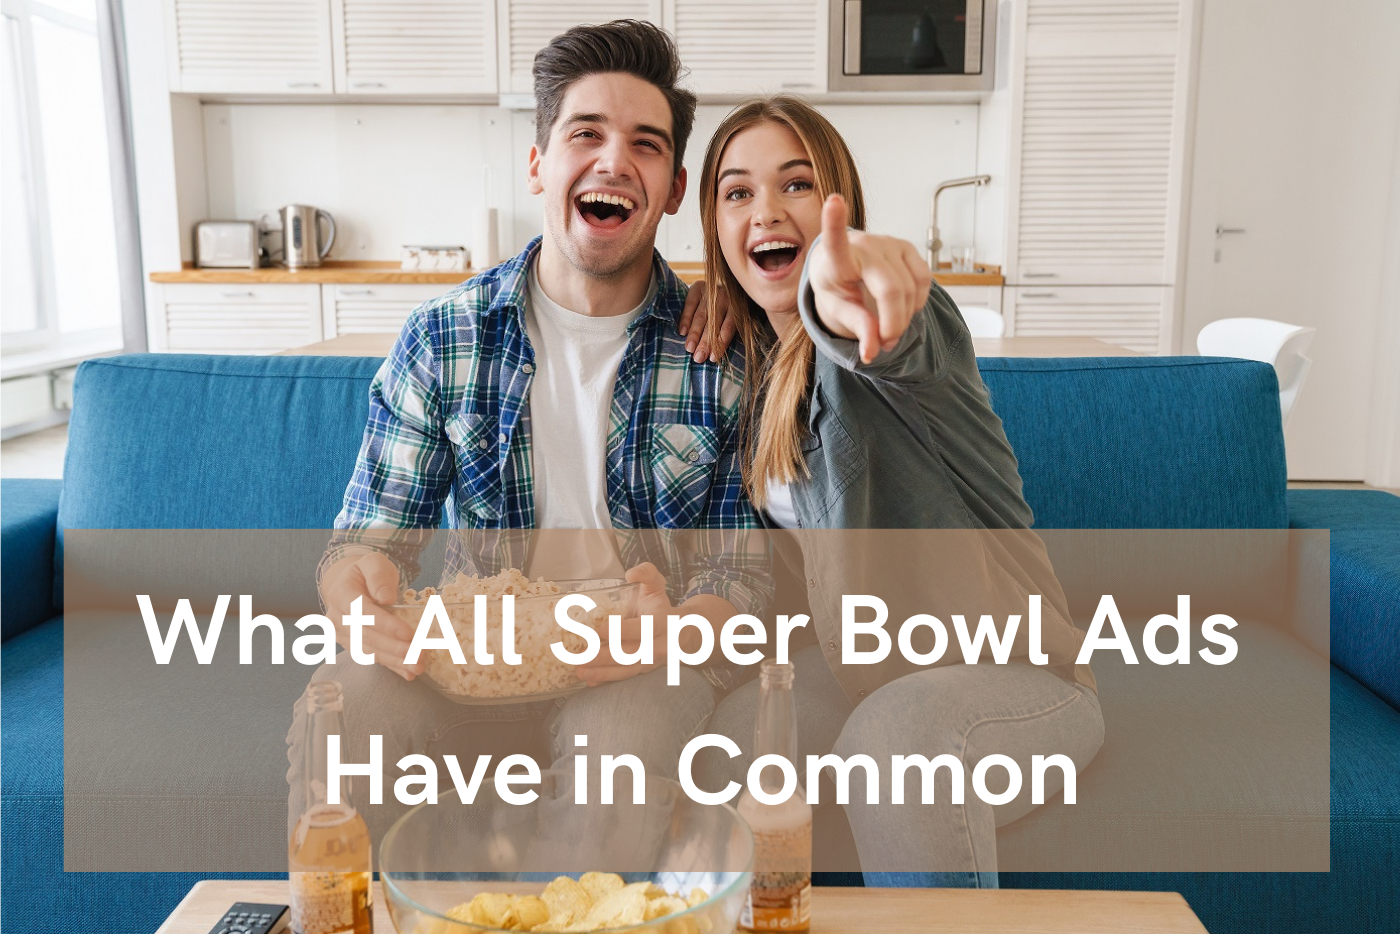 What All Super Bowl Ads Have in Common